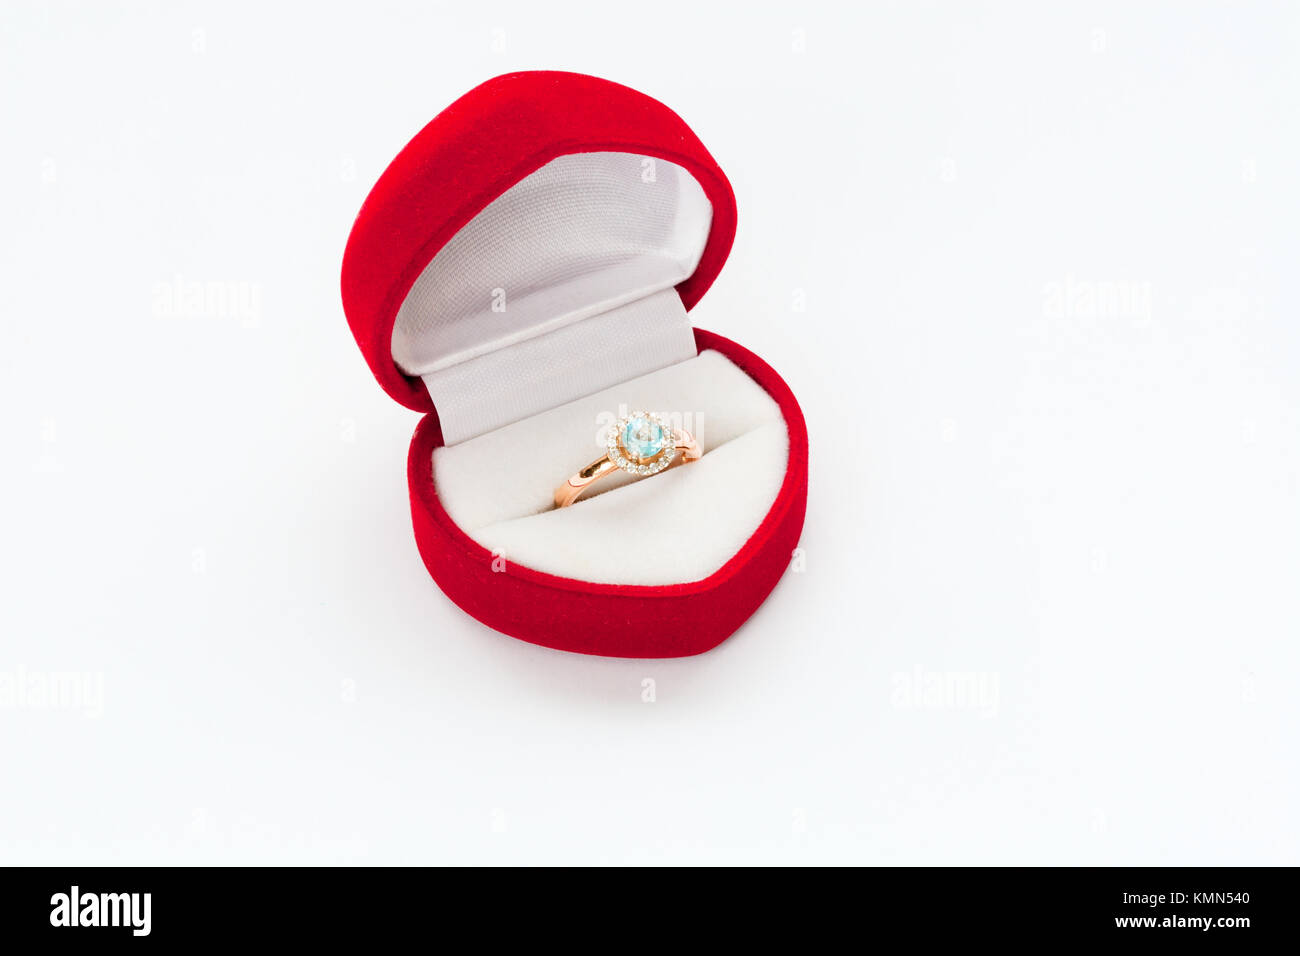 Gold ring with diamond in Red box - Stock Image